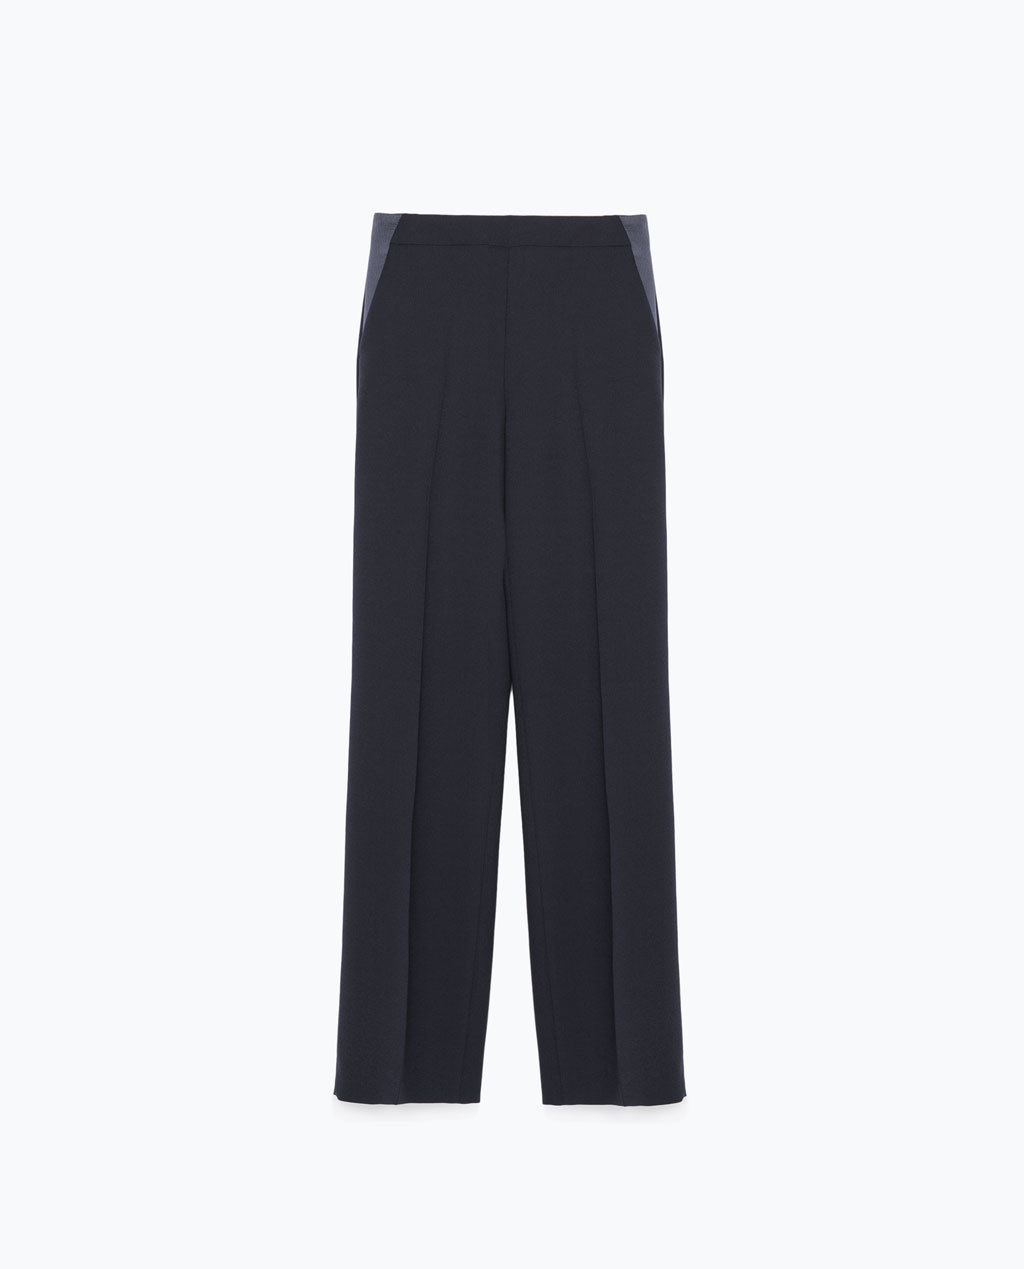 Crepe Drapey Wide Trousers - length: standard; pattern: plain; waist: mid/regular rise; predominant colour: navy; occasions: evening, work, creative work; fibres: polyester/polyamide - 100%; texture group: crepes; fit: wide leg; pattern type: fabric; style: standard; season: s/s 2015; wardrobe: basic